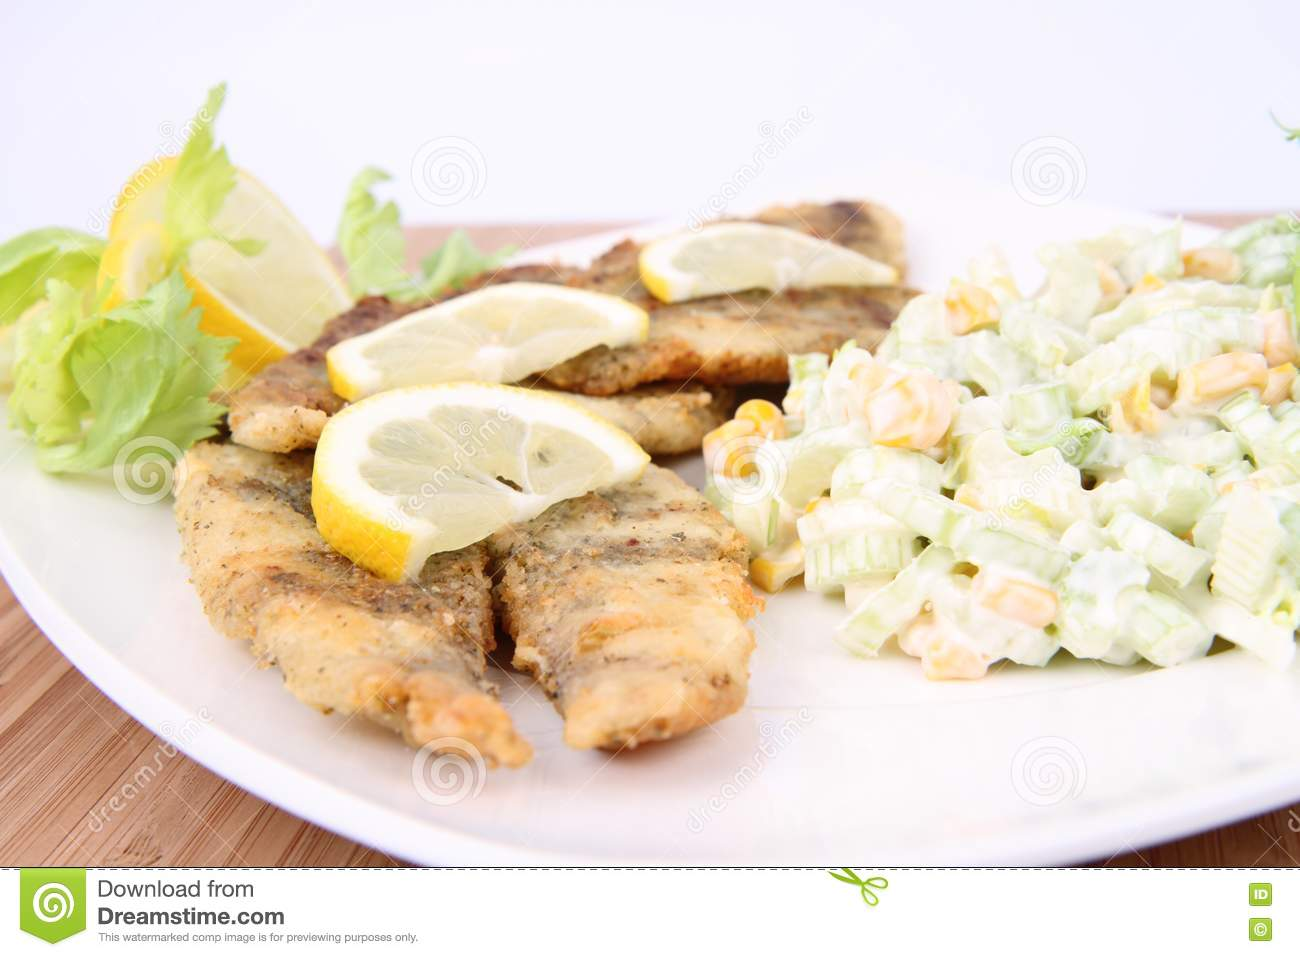 Fried Fish With Side Salad Royalty Free Stock Images